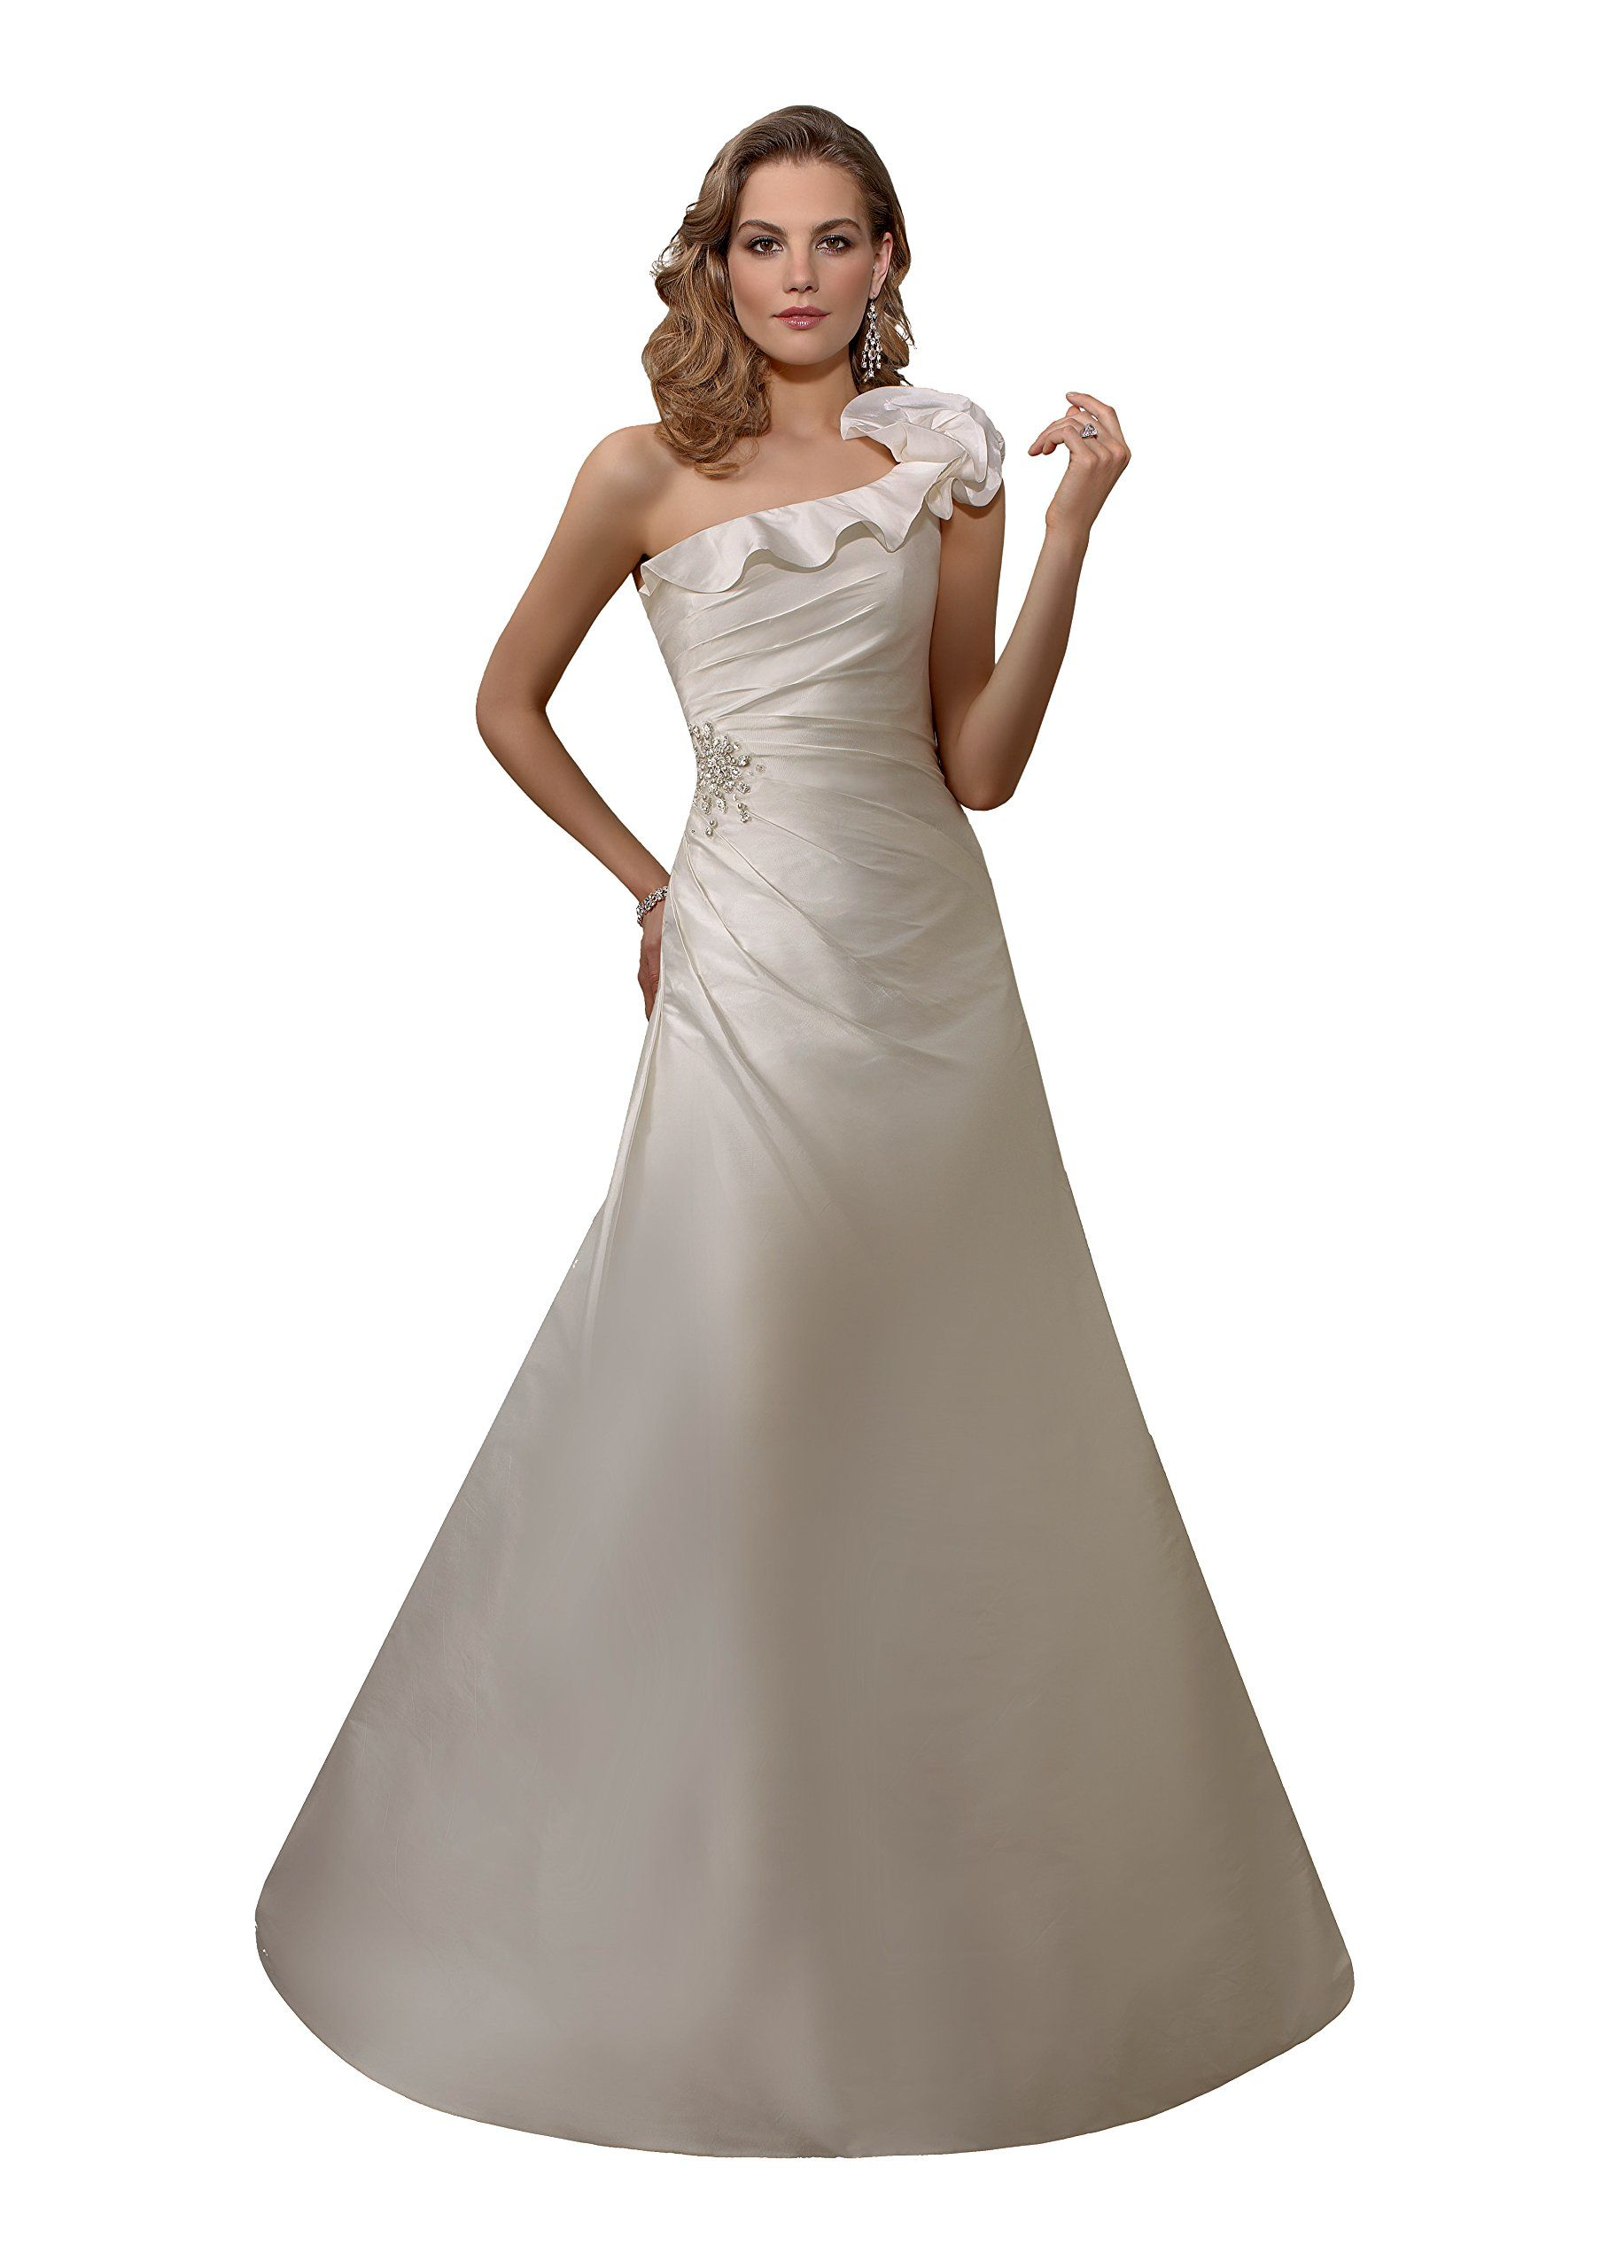 """Wedding Dress Cheap Mori Lee Destination Bridal Gown 6718 - White/Silver, size 8. Authentic Mori Lee Voyage Wedding Dress - Style: 6718. Size 8 = 35"""" bust, 26.5"""" waist, 38.5"""" hips. One Shoulder; Ruffle Neckline; Shoulder Flower. Side Gathered, Beaded Waist; Mid Back. Long A-Line Skirt; Train; White Taffeta with Silver details."""